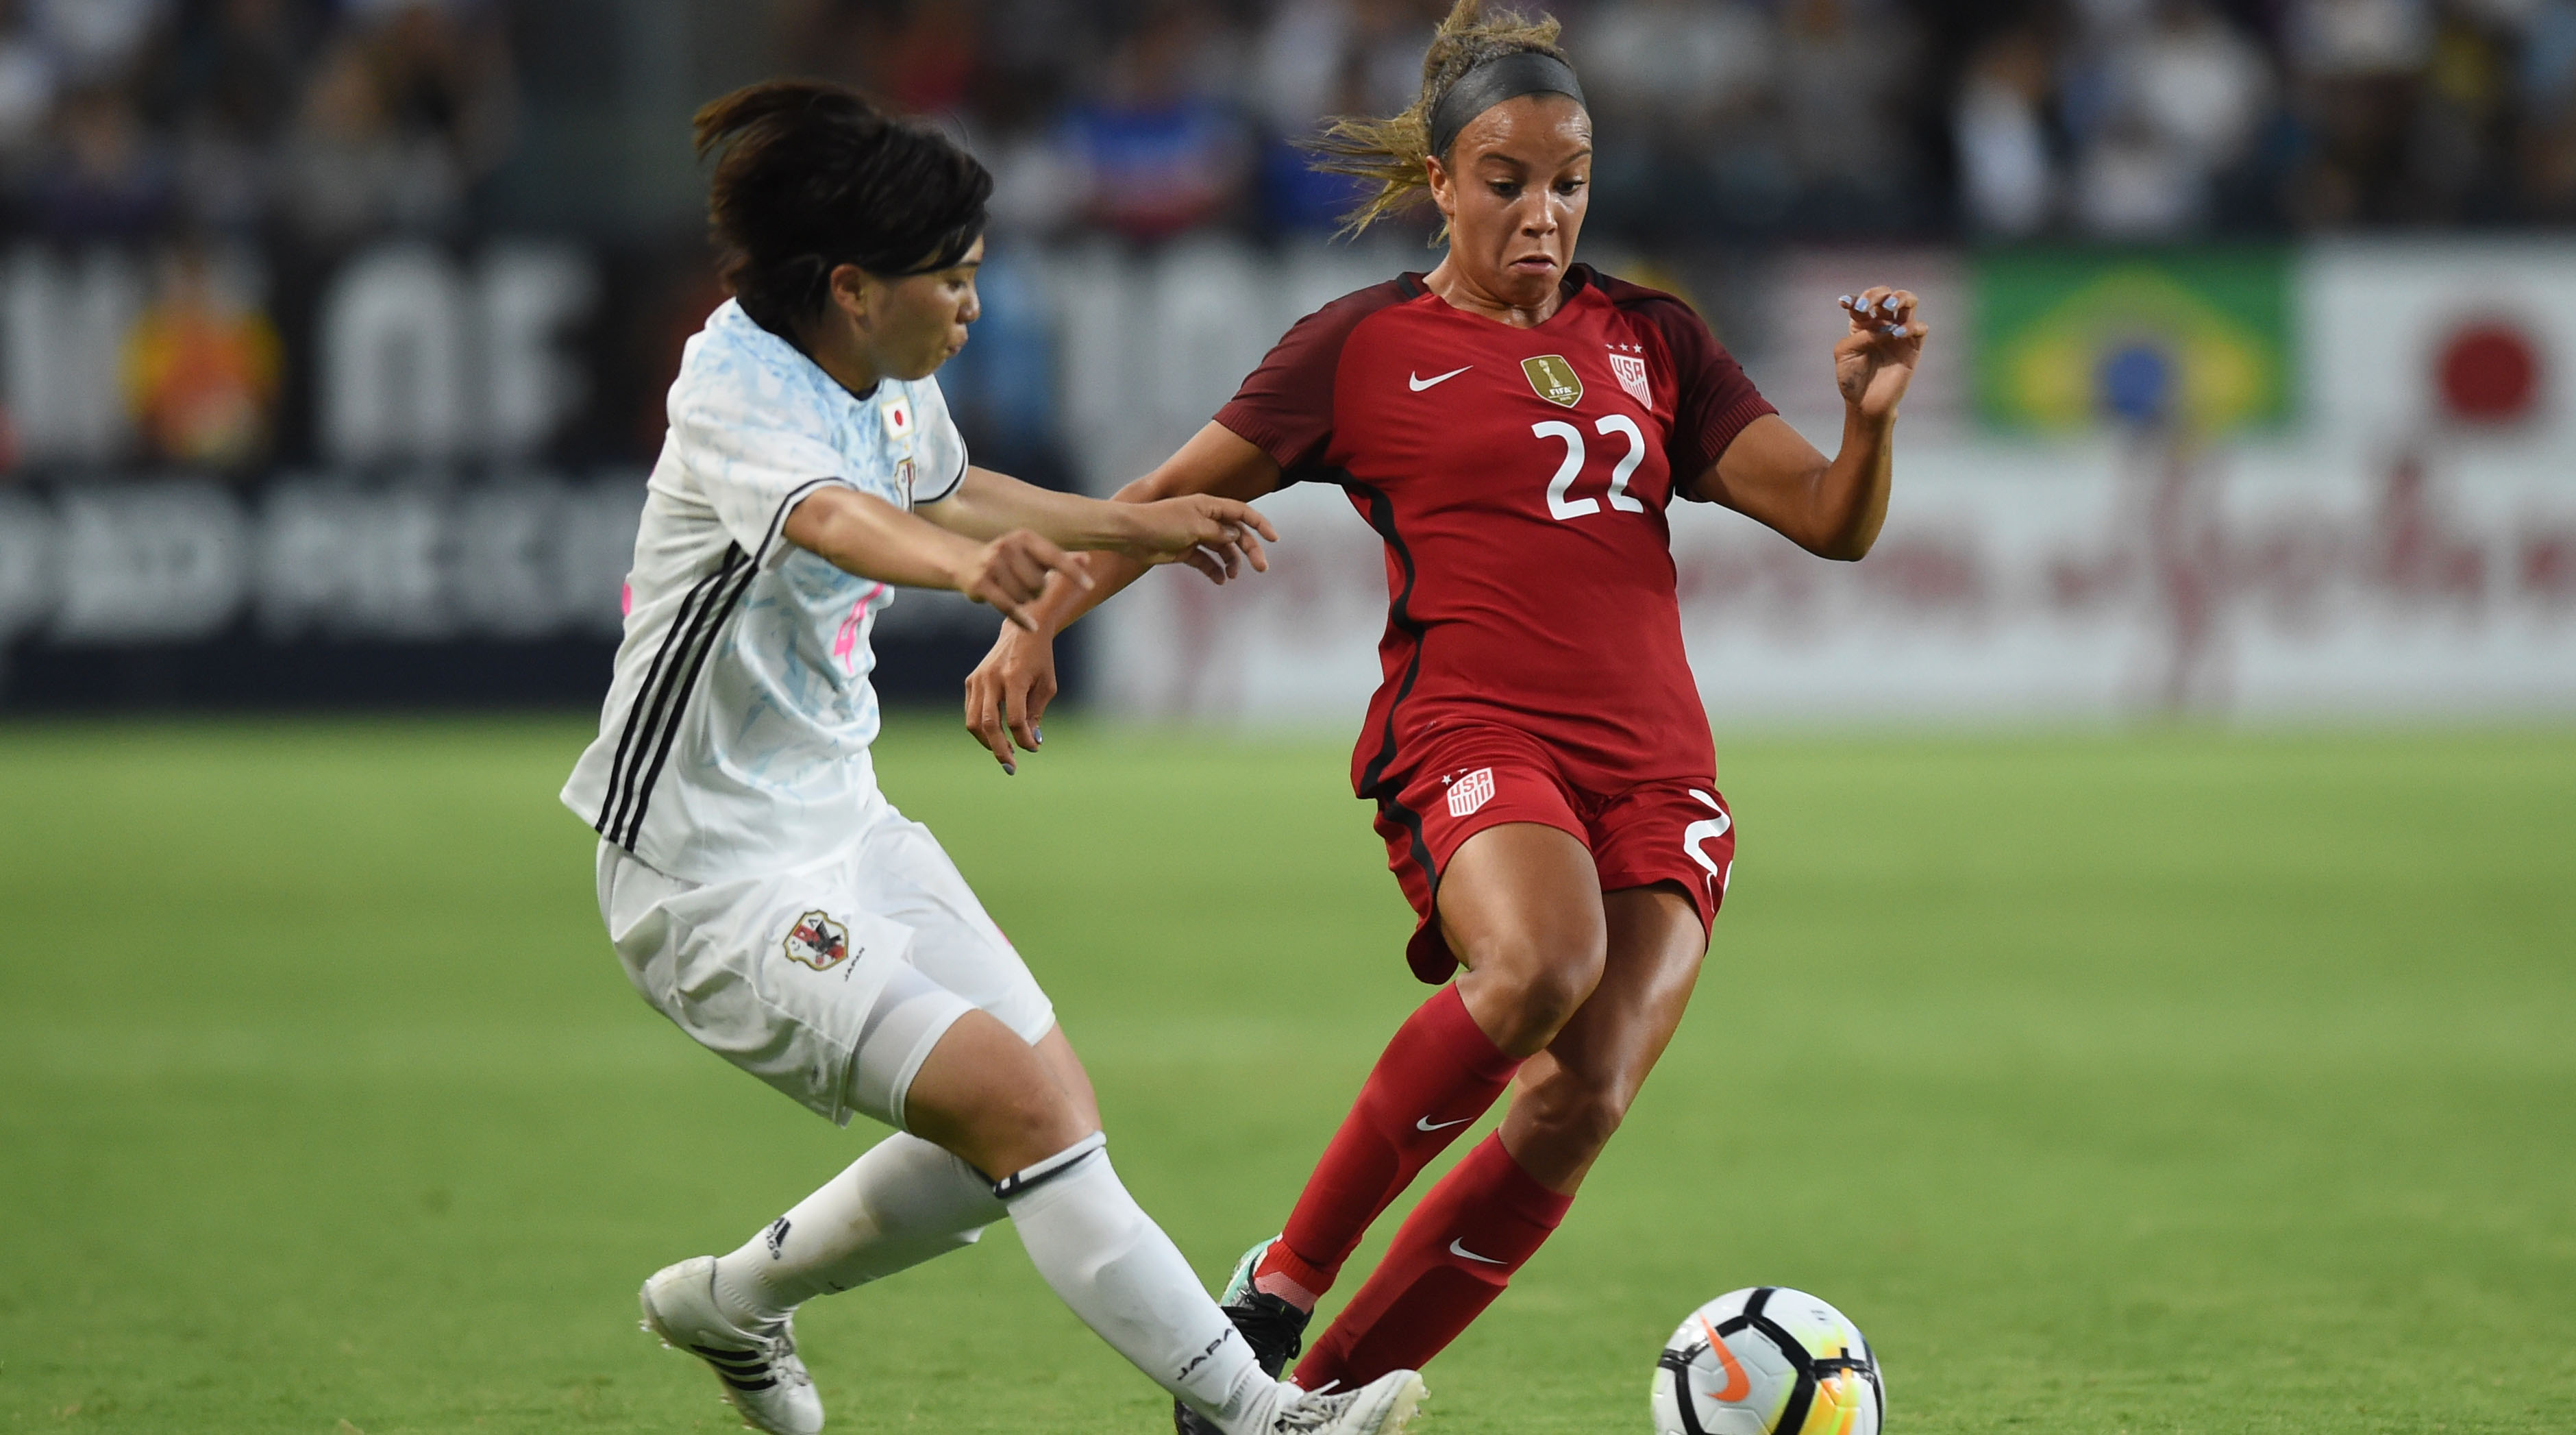 Watch: USWNT Nets 3 Goals In Victory Over Japan